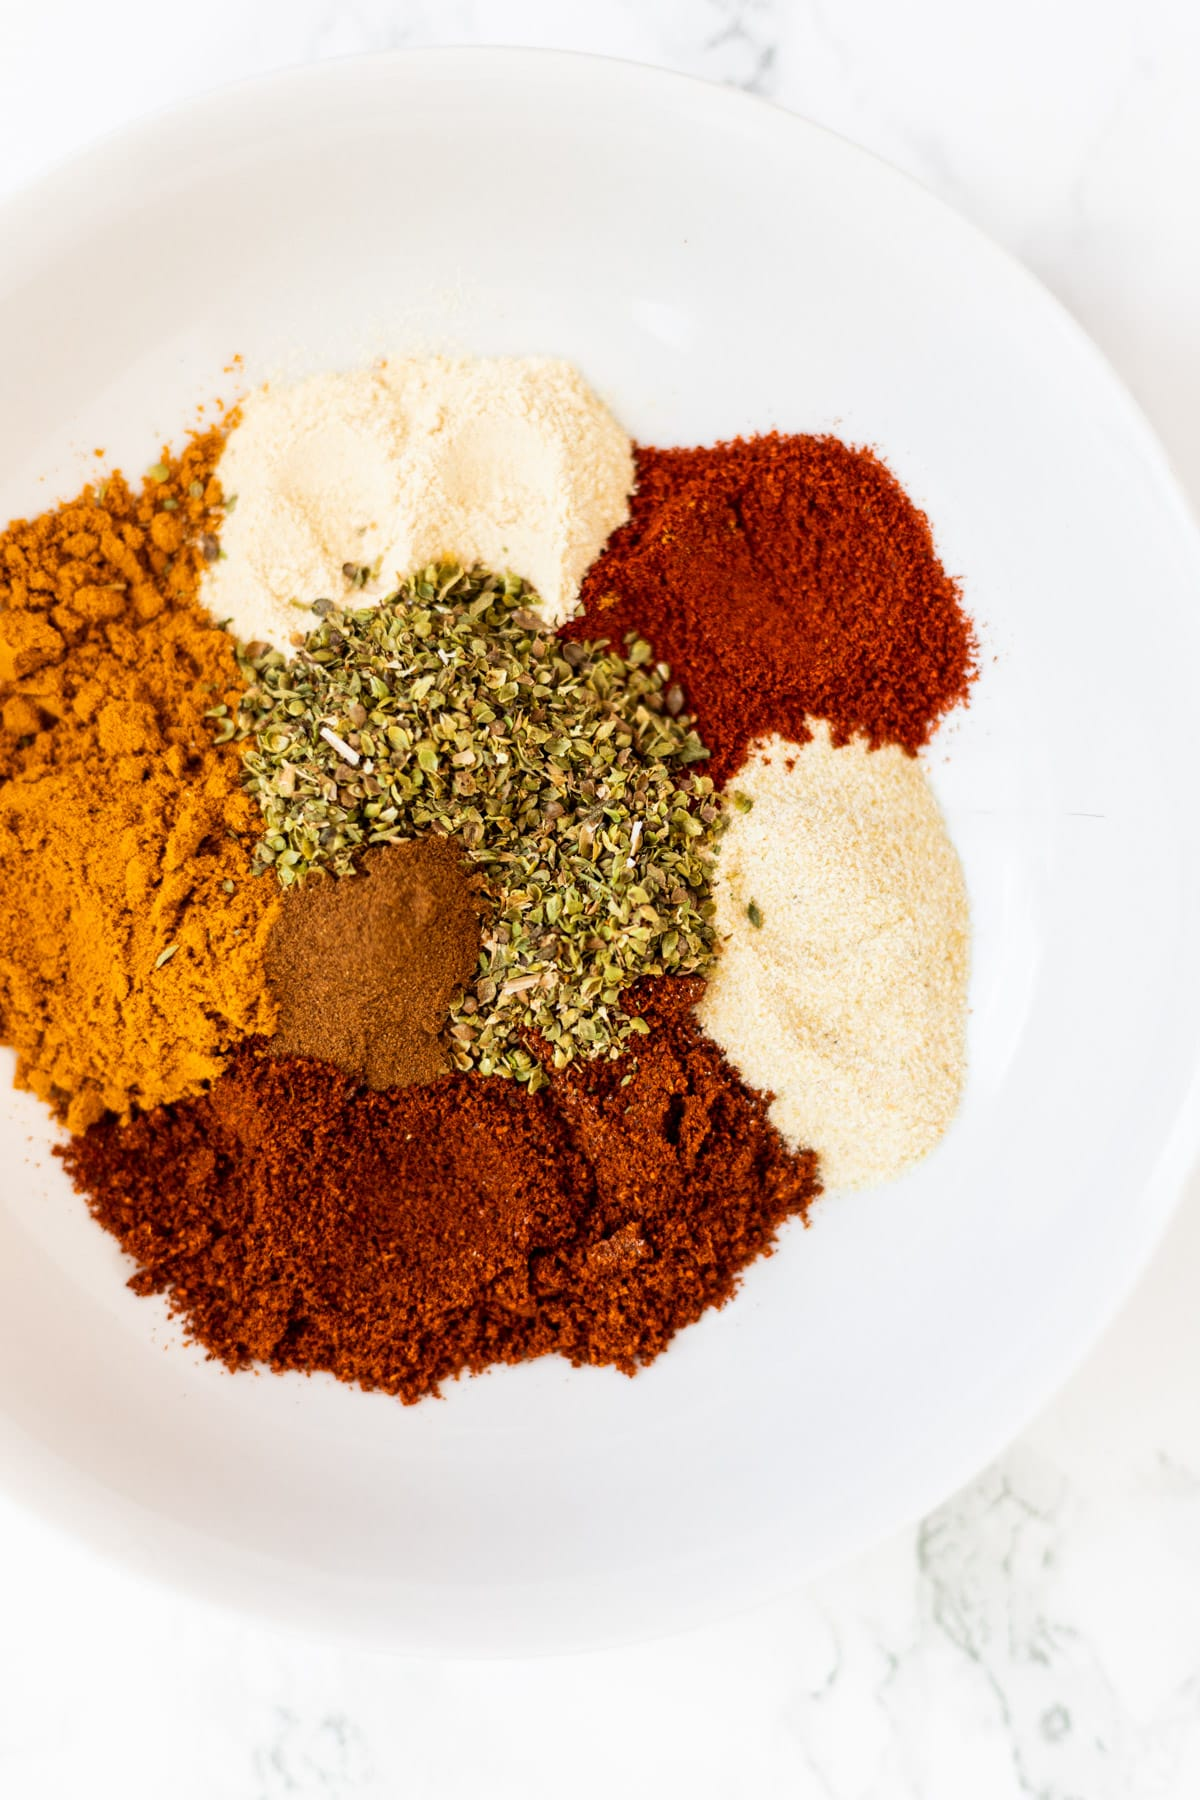 A top down view of a bowl of taco spices.